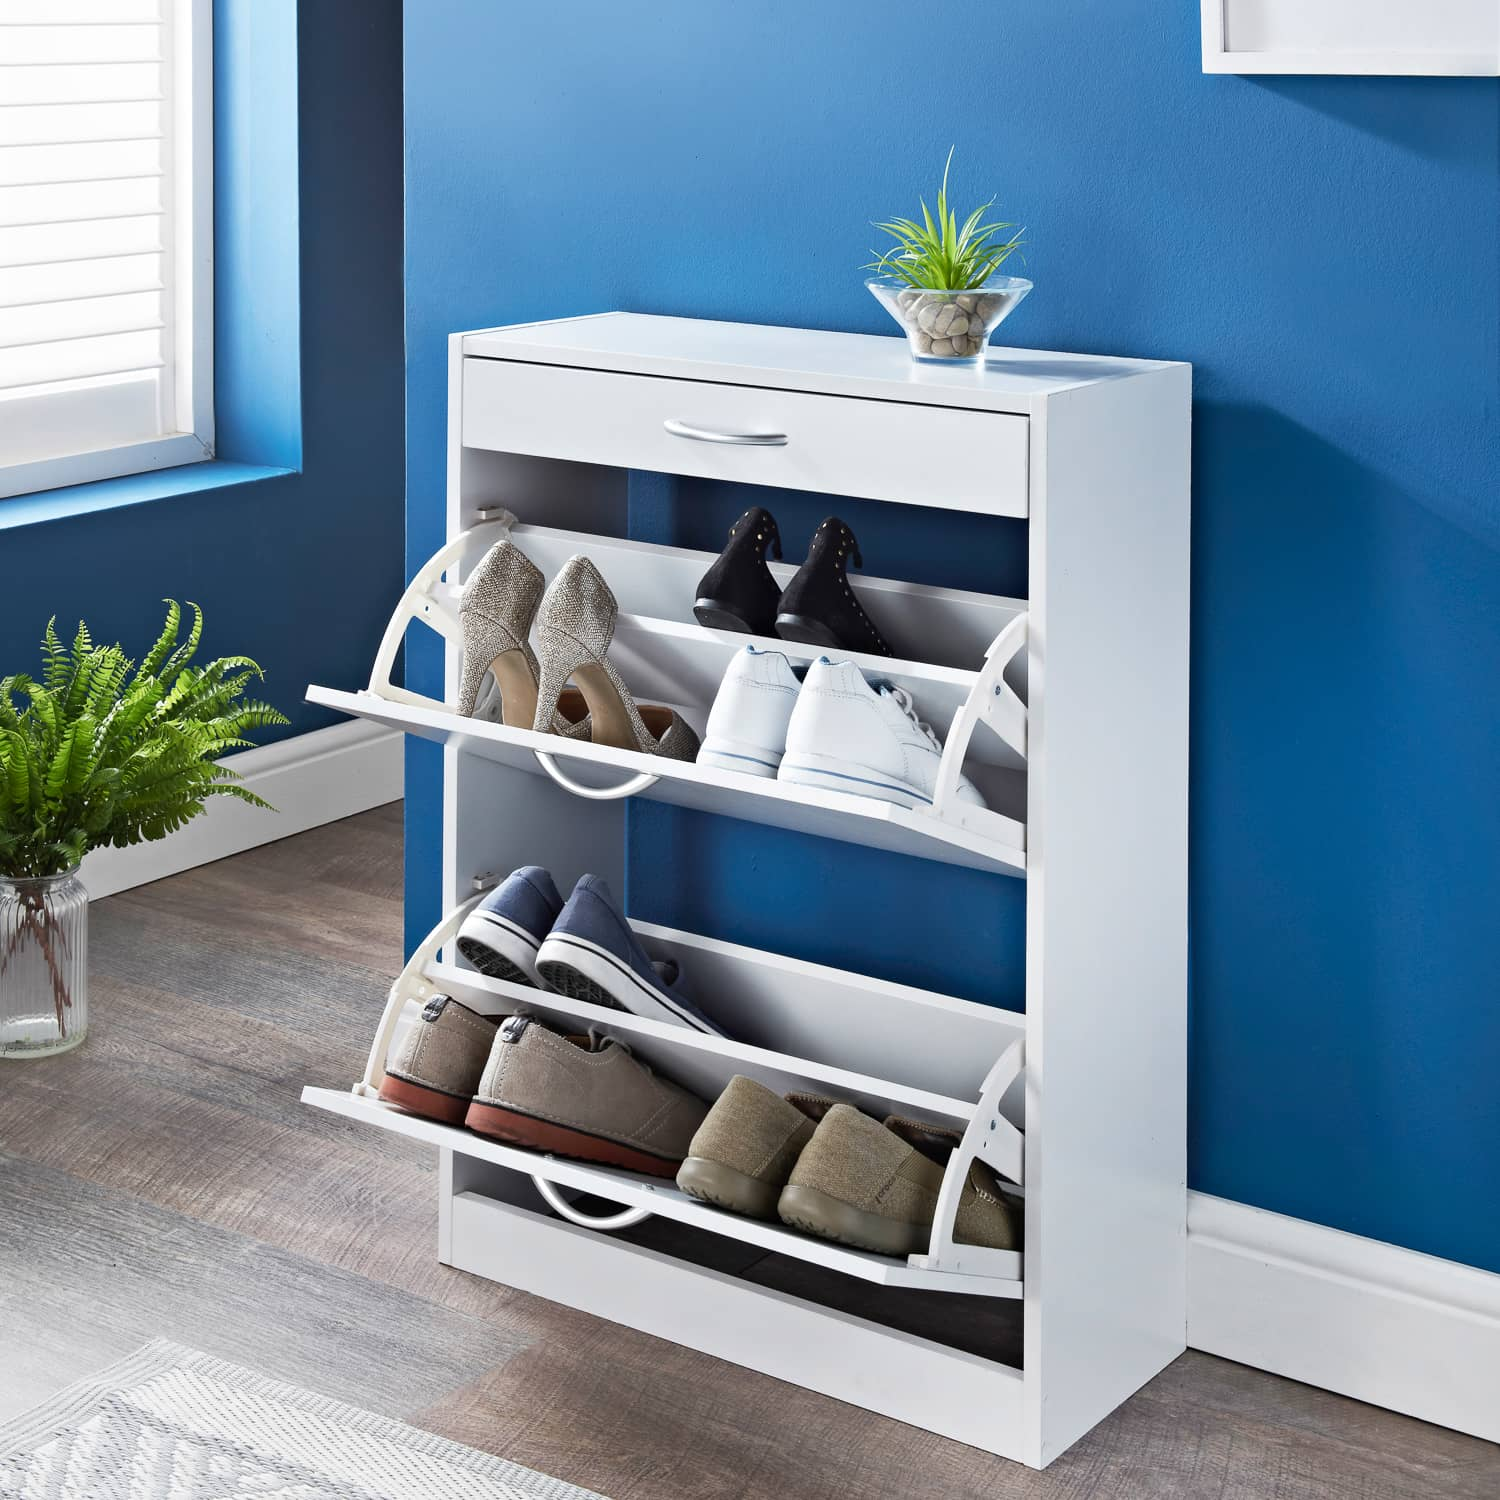 6 Reasons To Choose Shoe Cabinet In Cream Shades